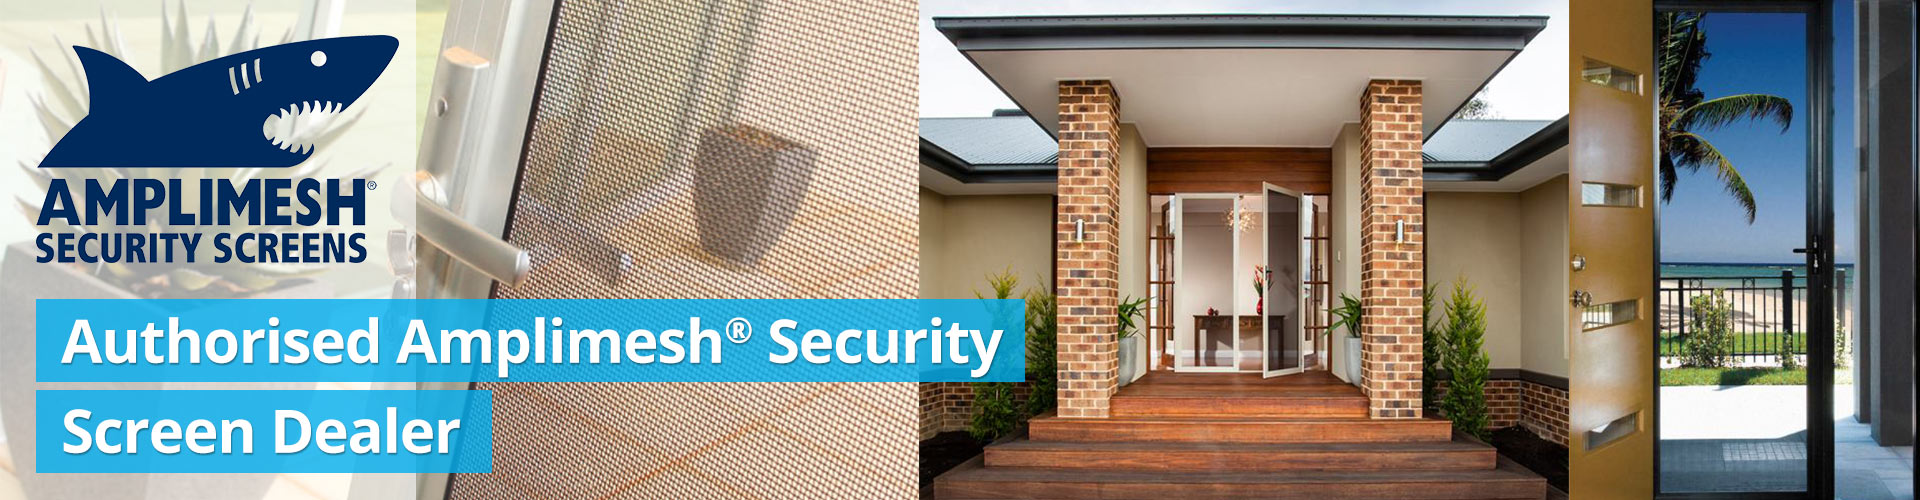 authorised amplimesh security screen dealer